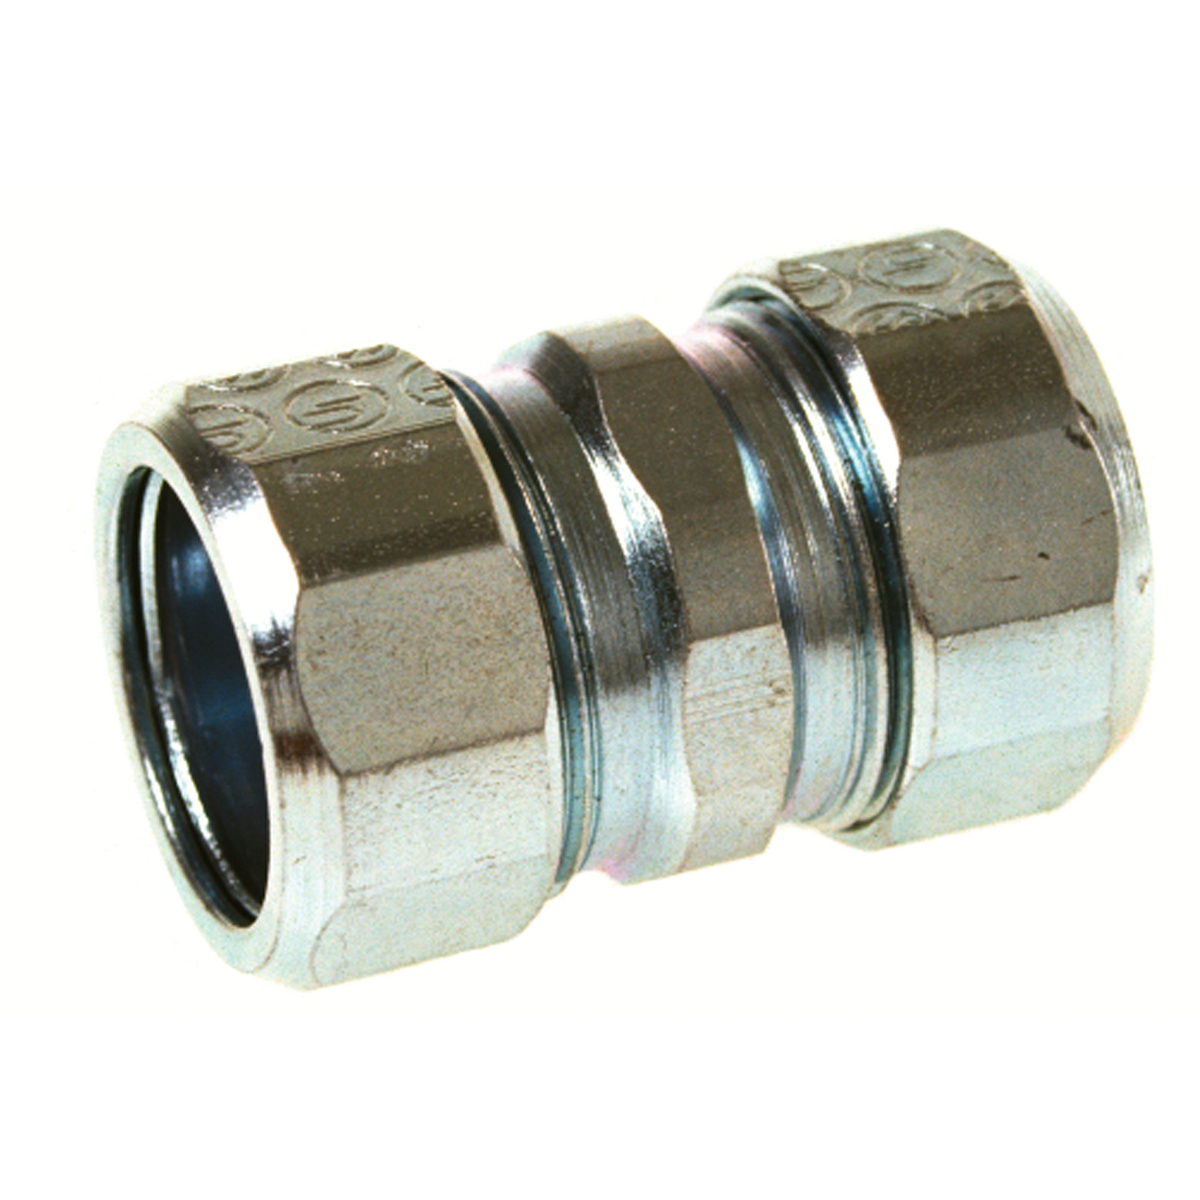 Hubbell-Raco 1824 Compression Connector